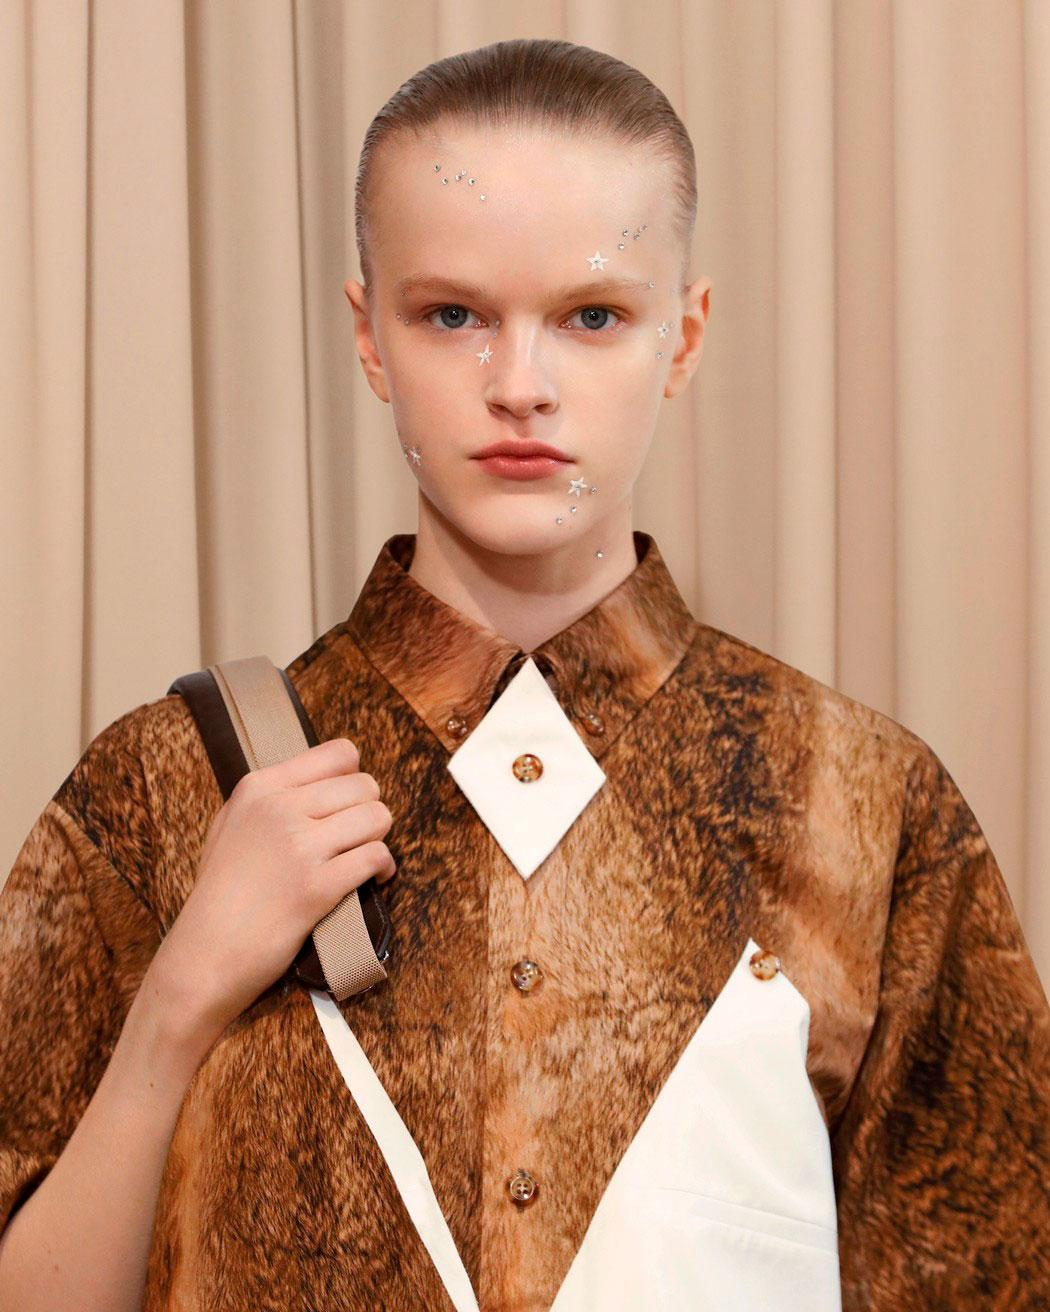 Burberry beauty A/W 2021 show showing model with slicked back hair and silver stars on her face